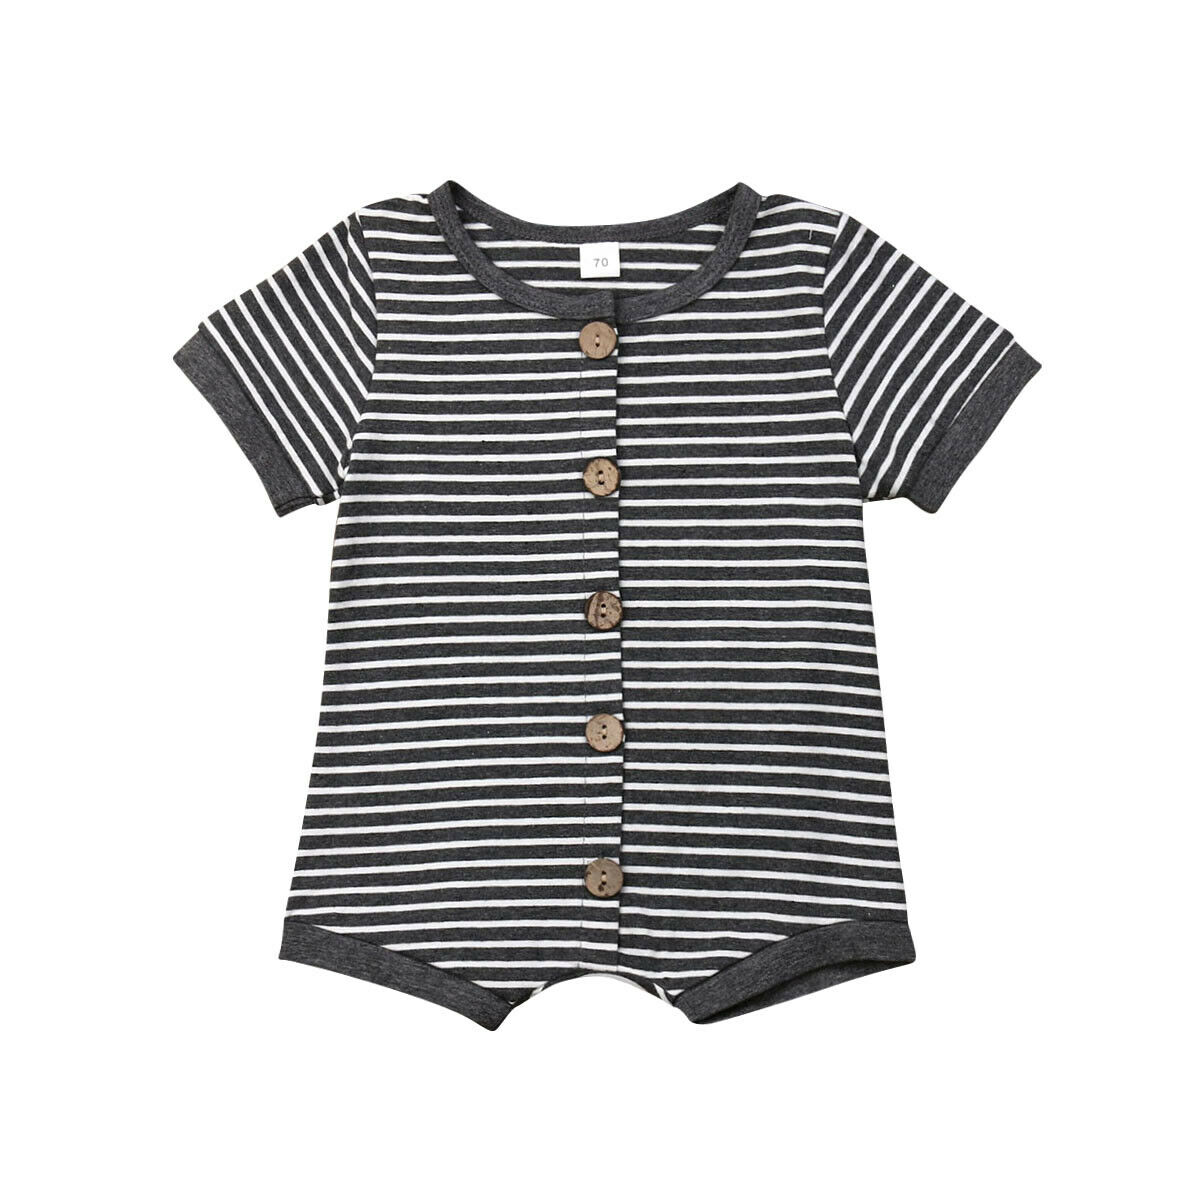 Summer Newborn Baby Boy Girl Short Sleeve Striped Button Cotton   Romper   Jumpsuit One Pieces Outfits Baby Clothes 0-24M